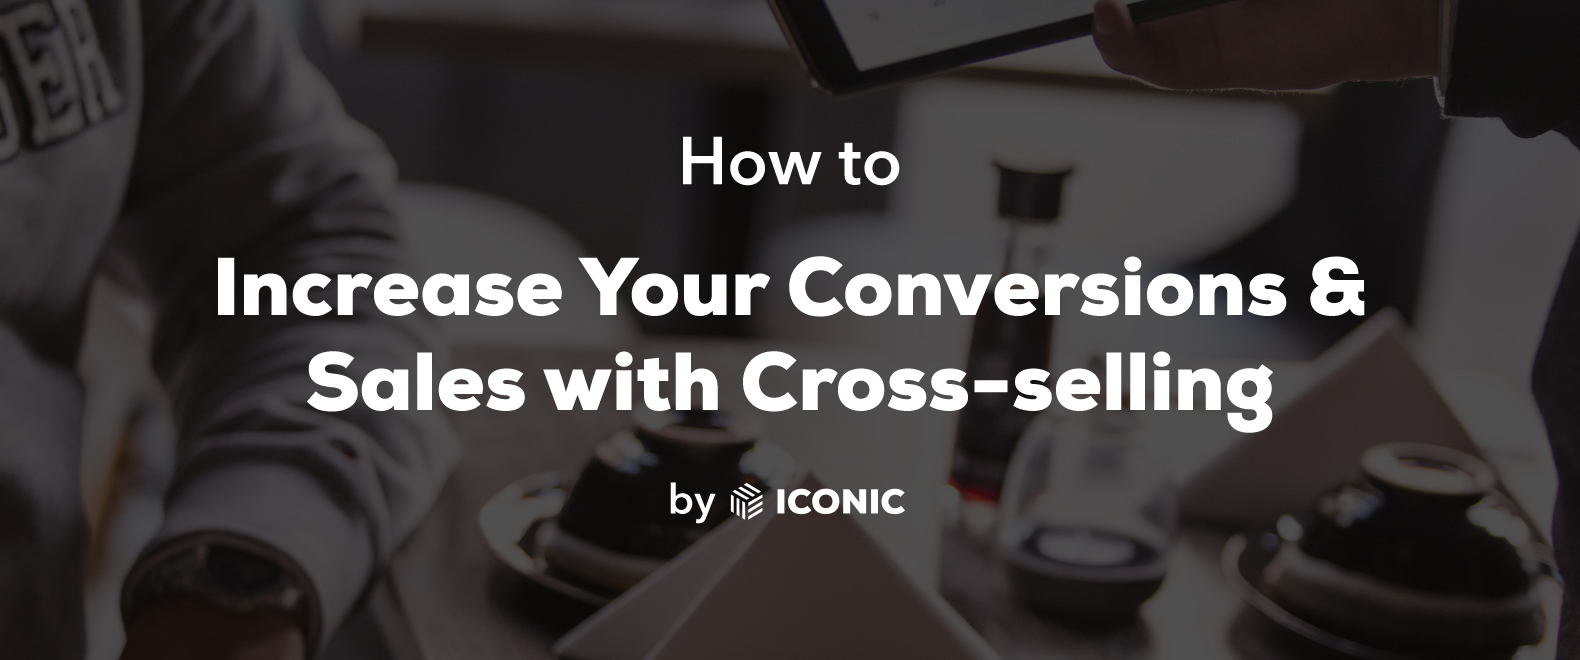 How to Increase Sales with Cross-selling